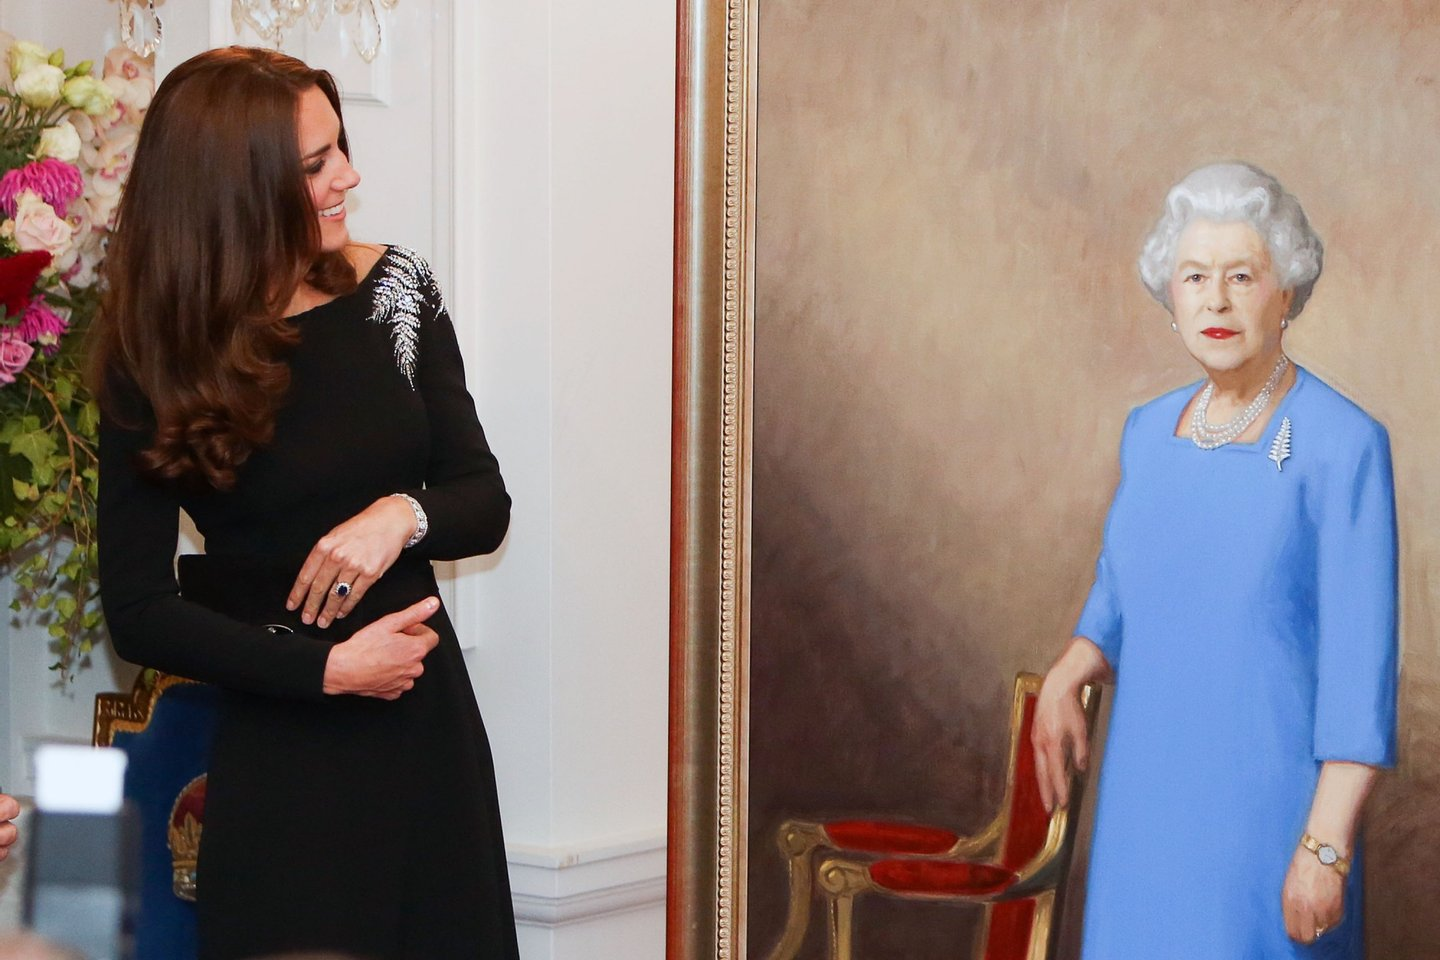 WELLINGTON, NEW ZEALAND - APRIL 10: Catherine, Duchess of Cambridge inspects a portrait of Queen Elizabeth II, painted by New Zealand artist Nick Cuthell and unveiled during a state reception at Government House on April 10, 2014 in Wellington, New Zealand. The Duke and Duchess of Cambridge are on a three-week tour of Australia and New Zealand, the first official trip overseas with their son, Prince George of Cambridge. (Photo by Hagen Hopkins/Getty Images)